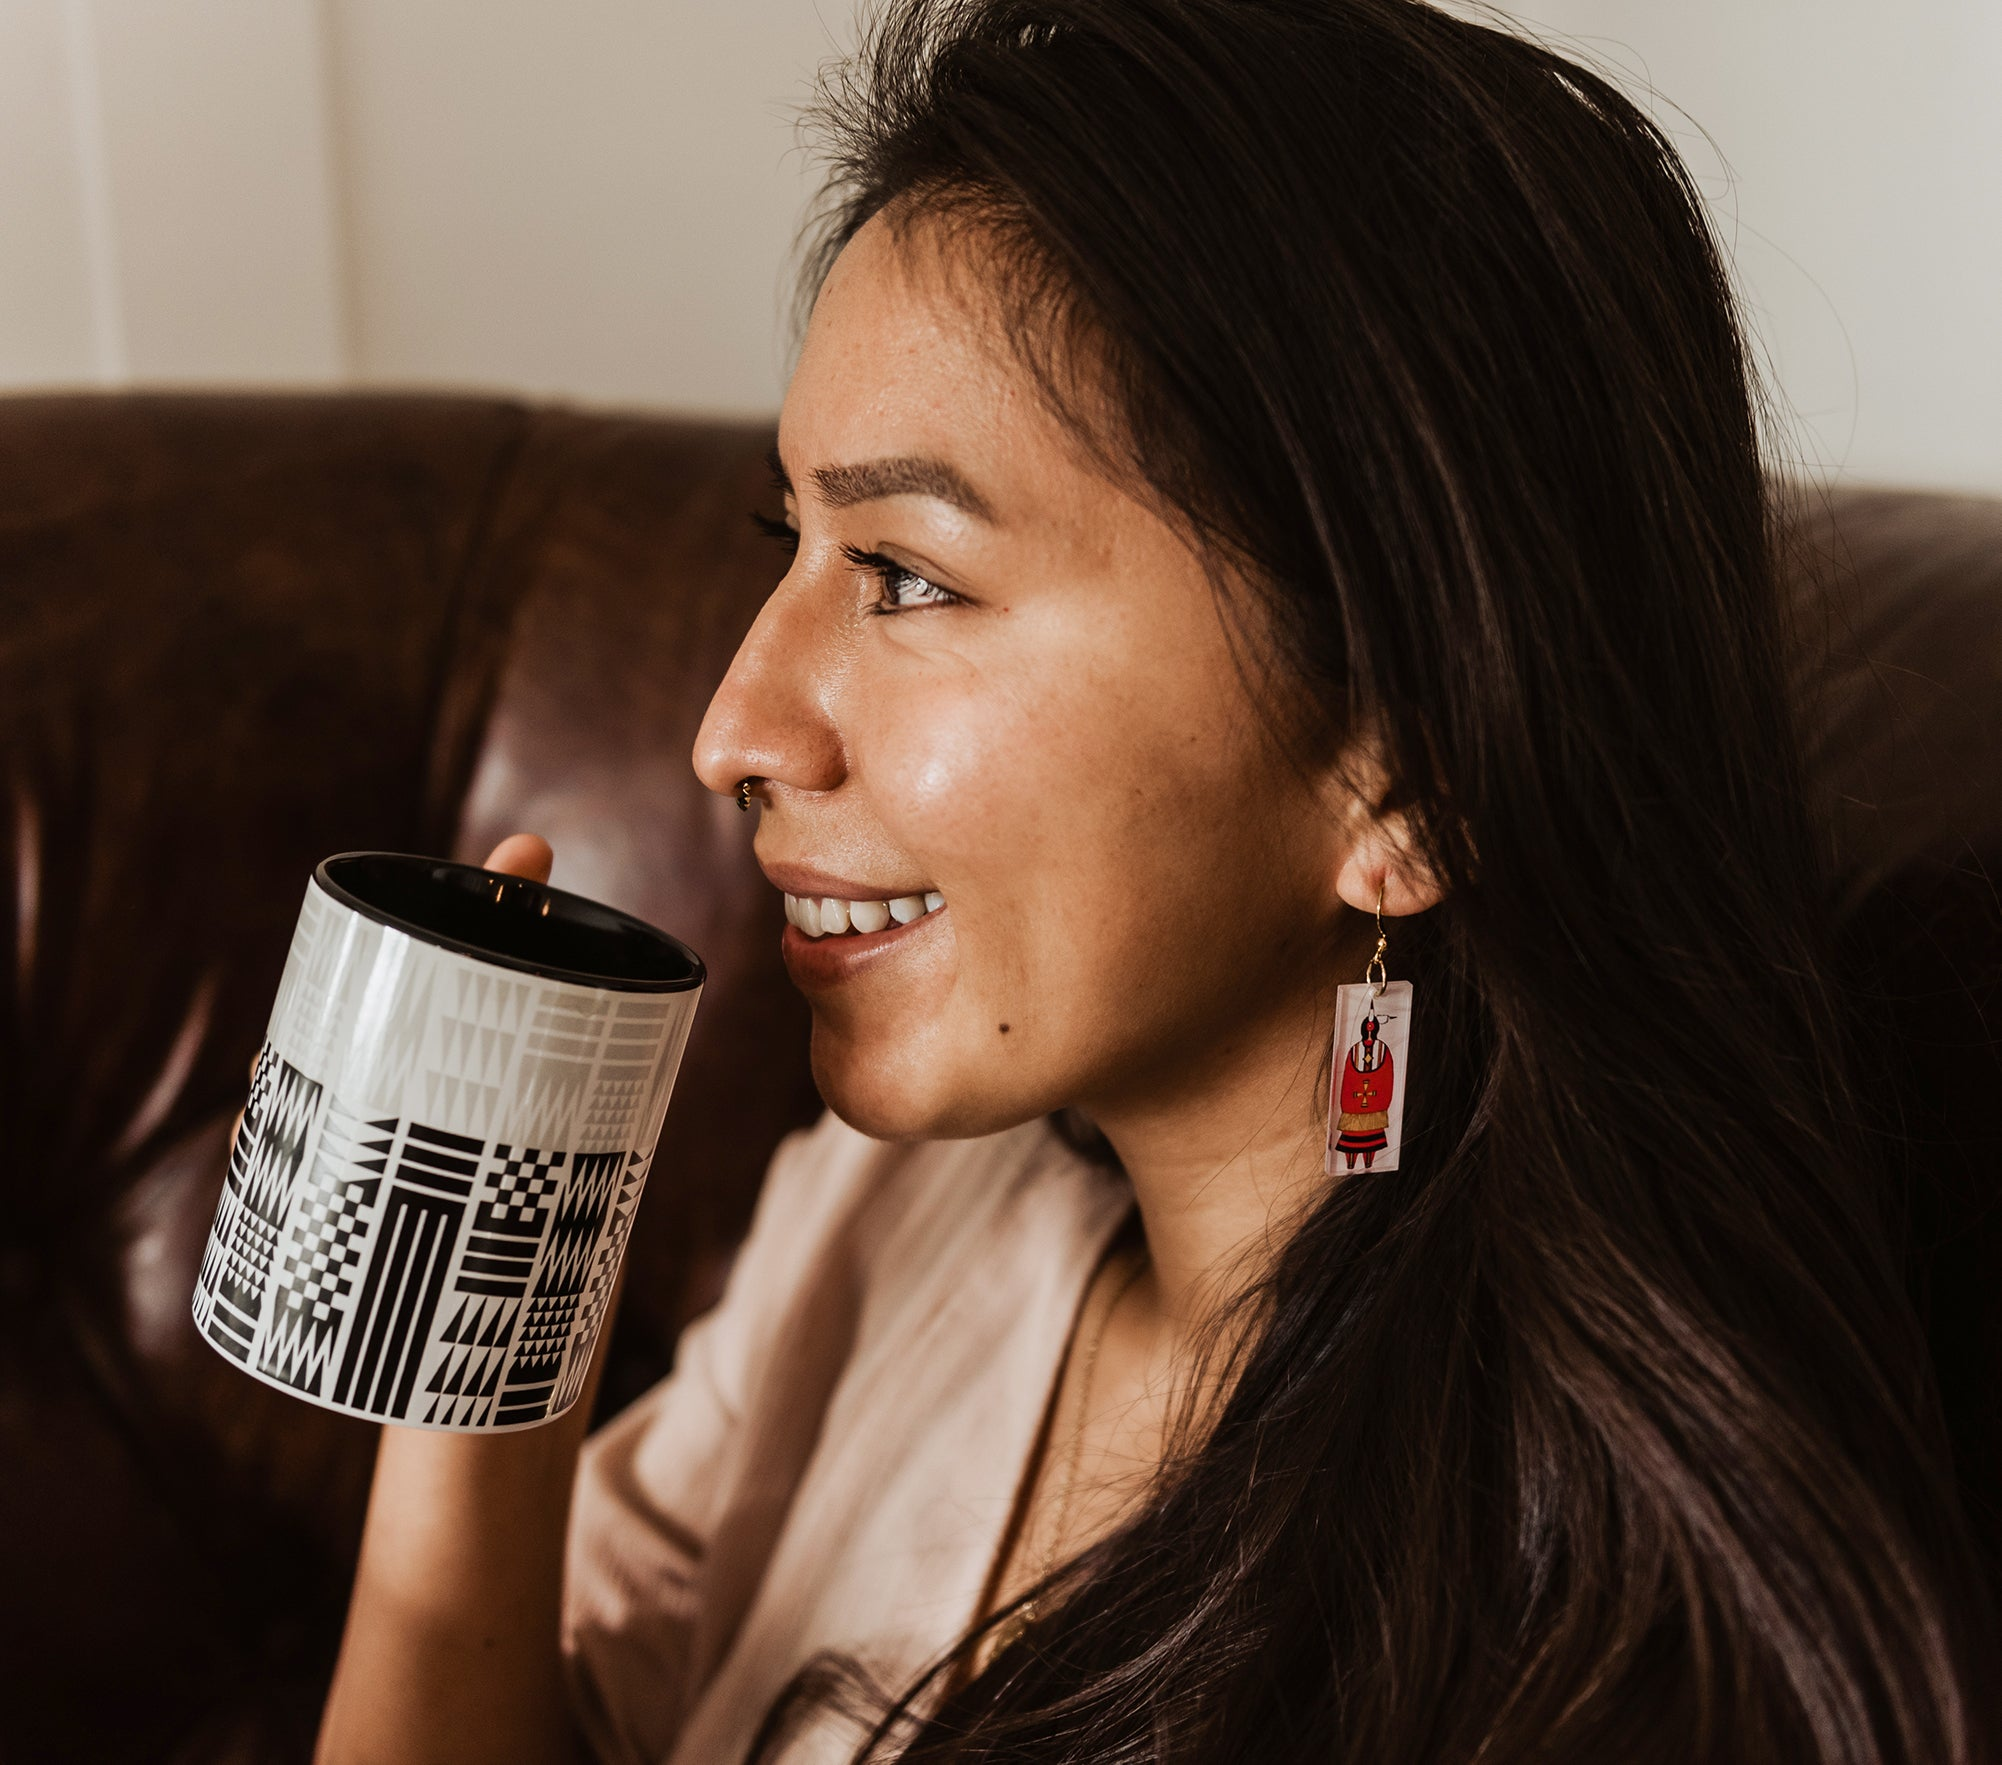 Woman-smiles-holding-black-and-white-Coast-Salish-Pattern-mug-and-wears-white-earrings-with-woman-in-red